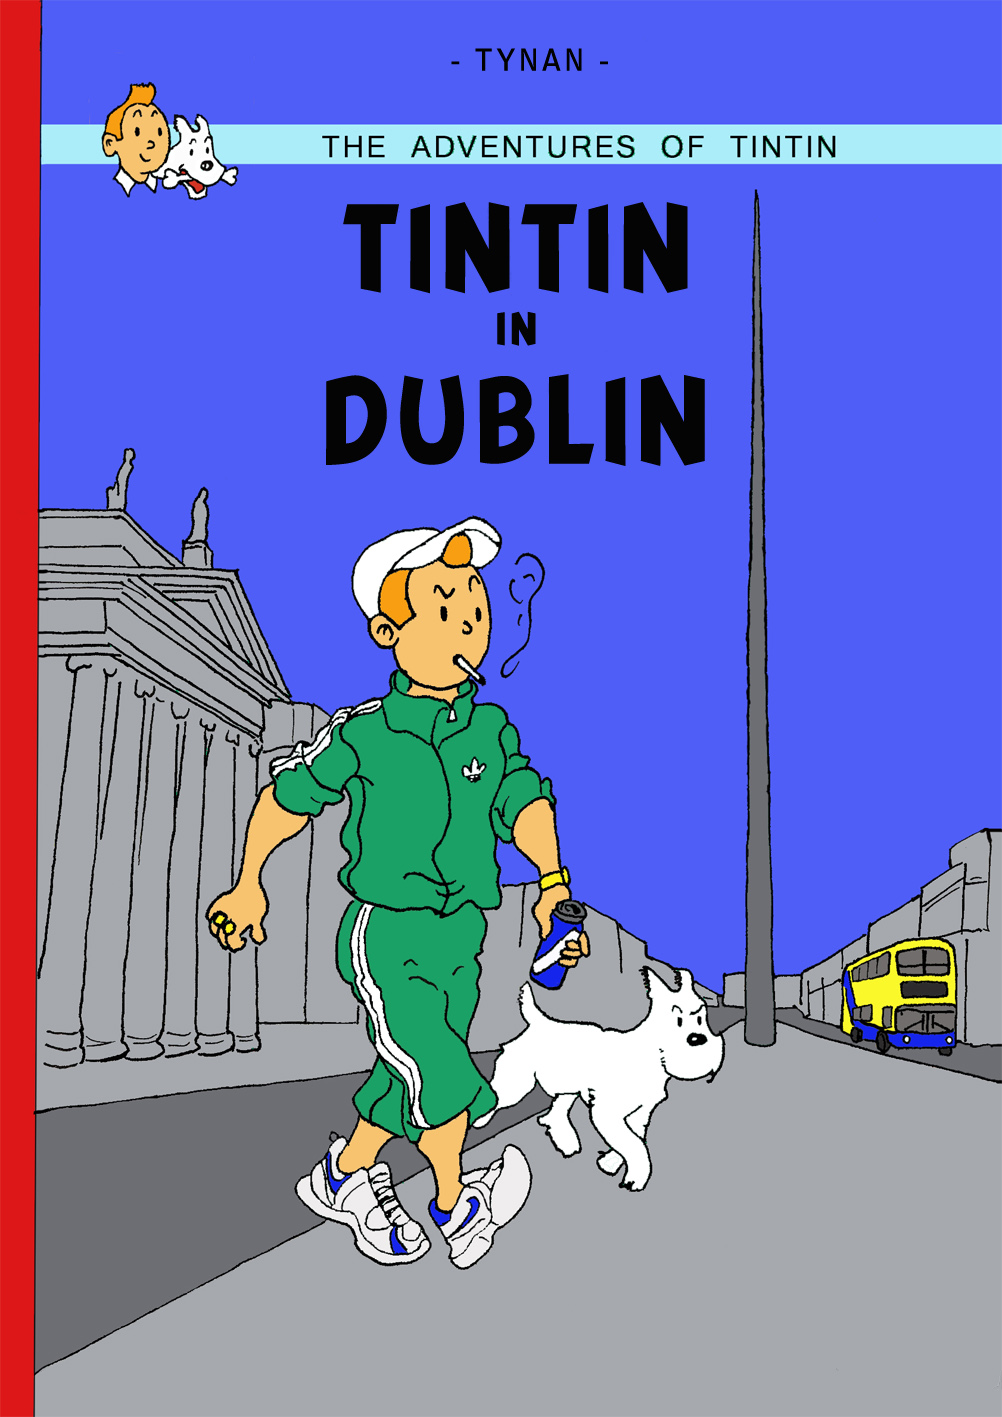 Tintin+in+Dublin+2